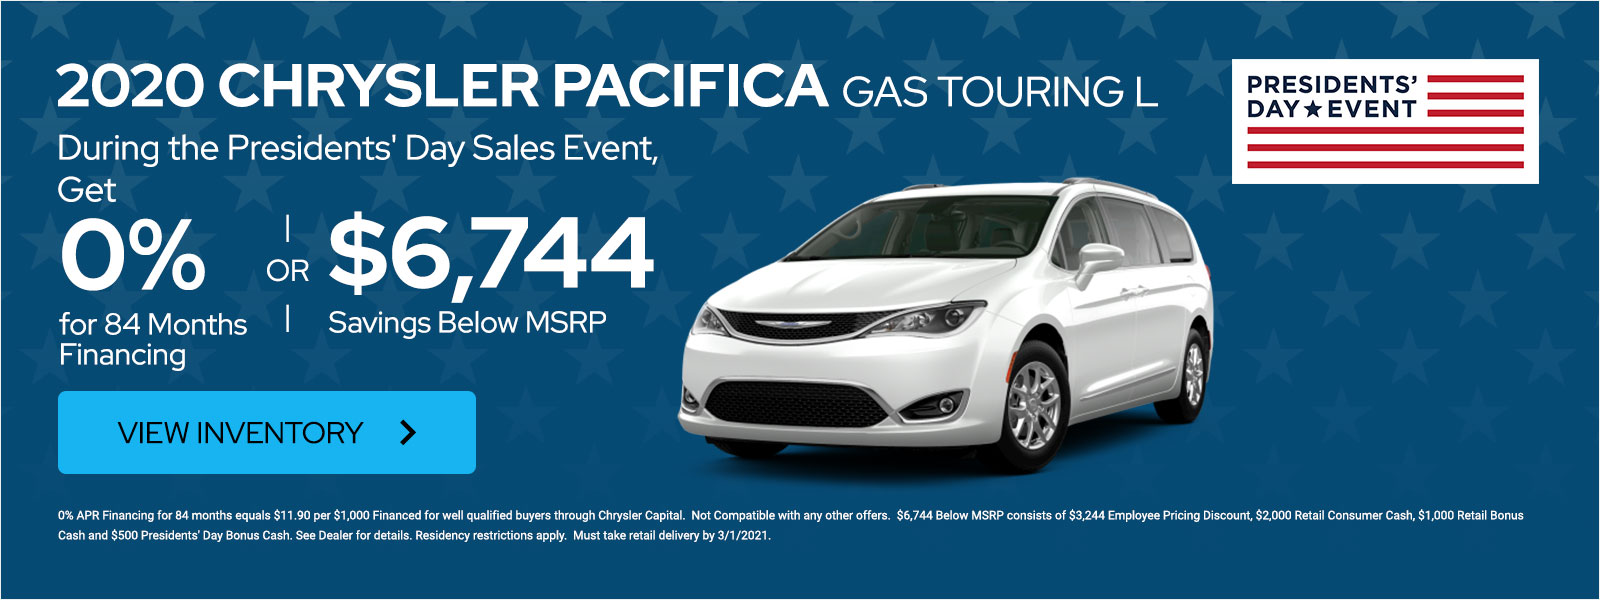 2020 Chrysler Pacifica Gas Touring L